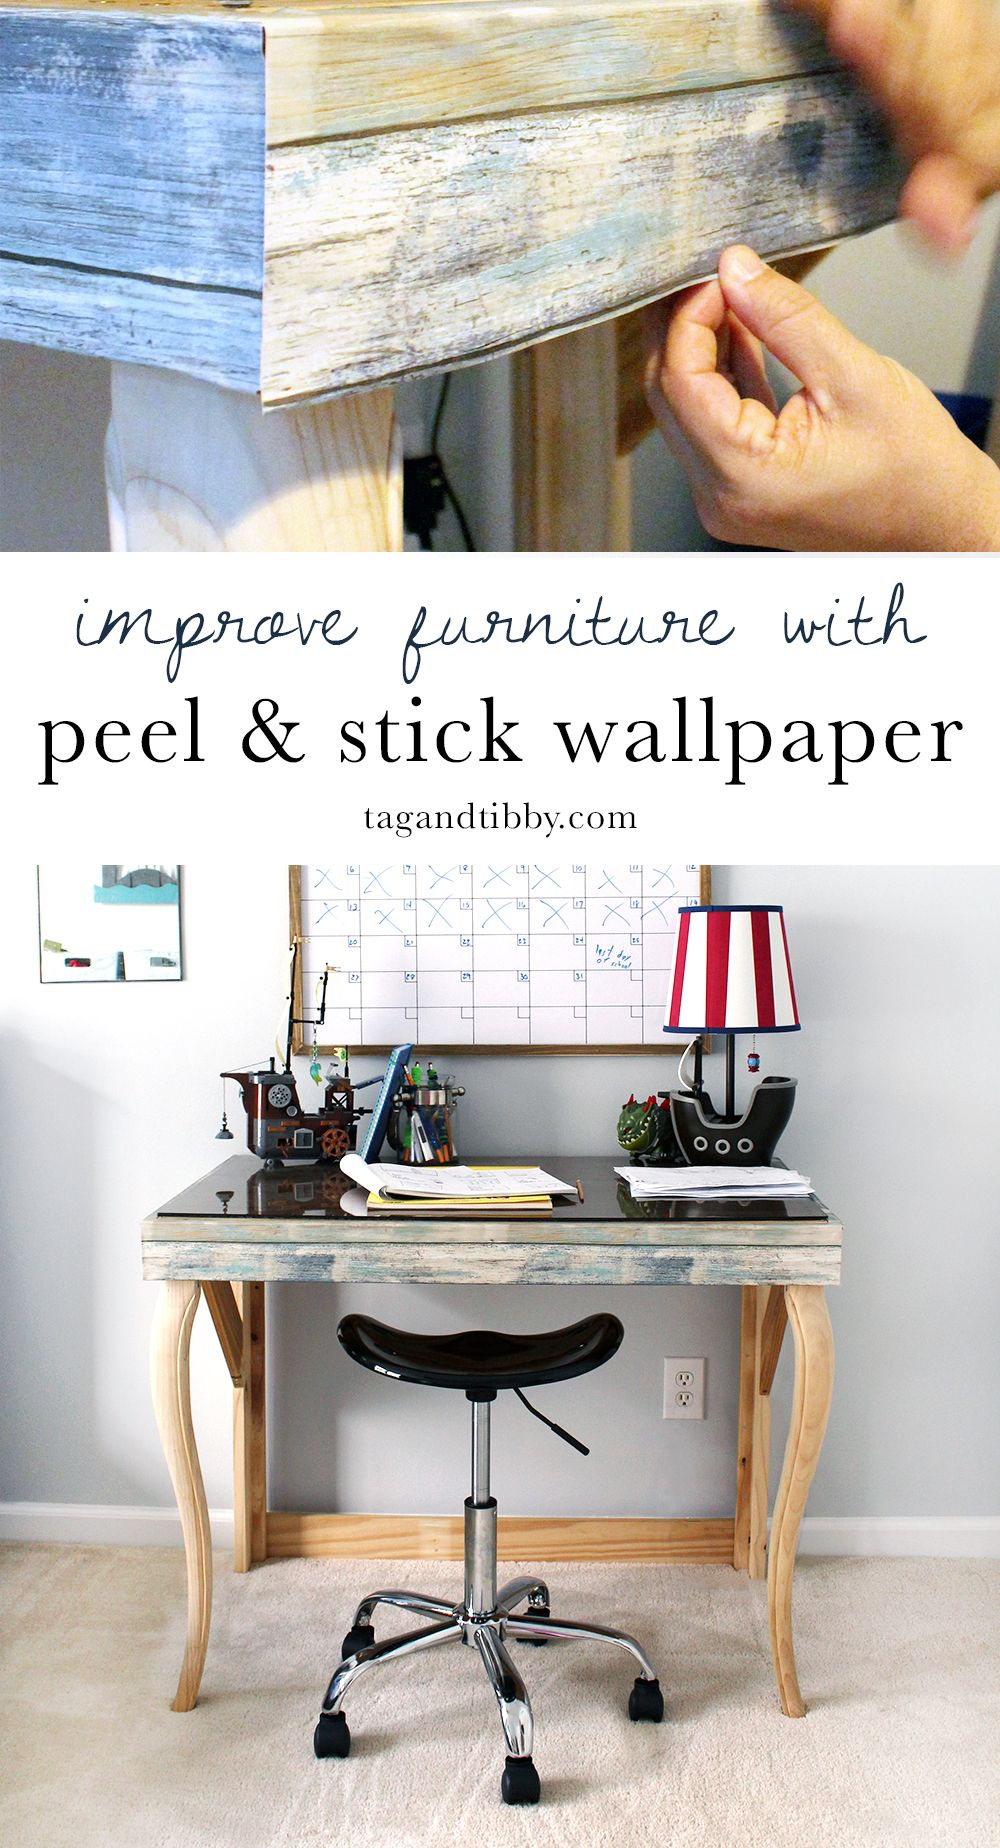 How to improve furniture with peel u stick wallpaper in diy